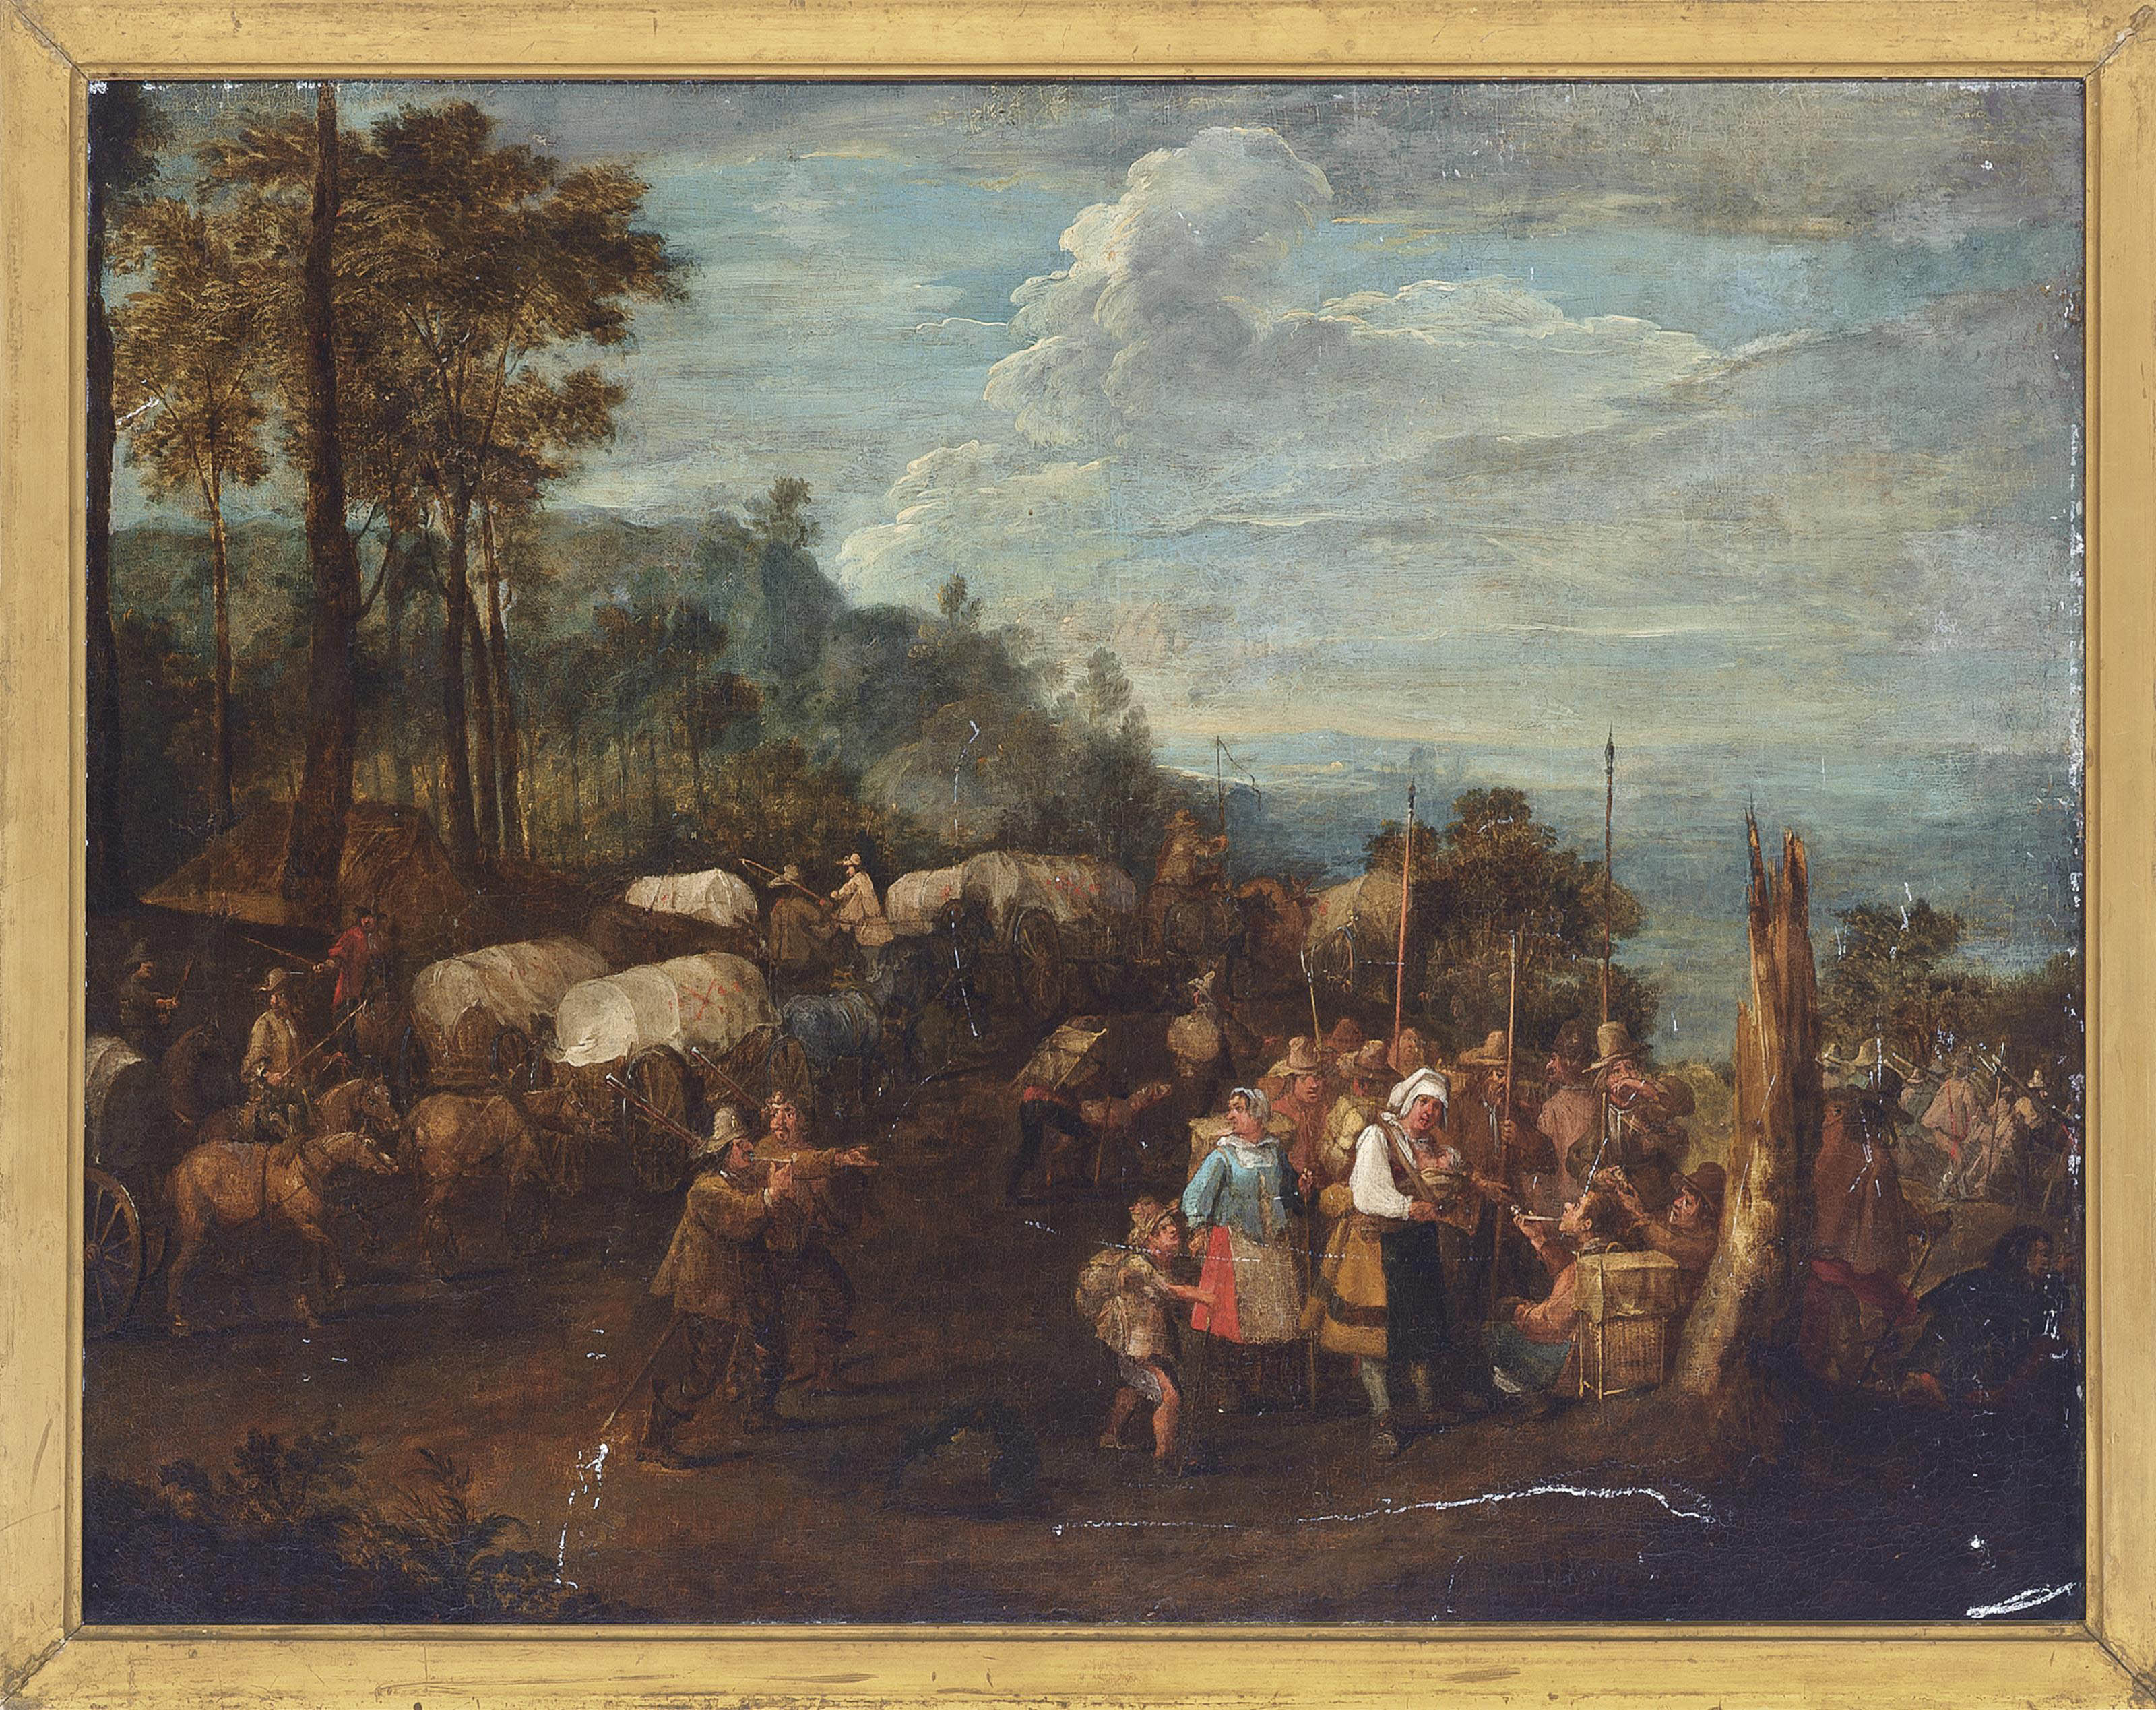 Peasants and soldiers on a wooded track